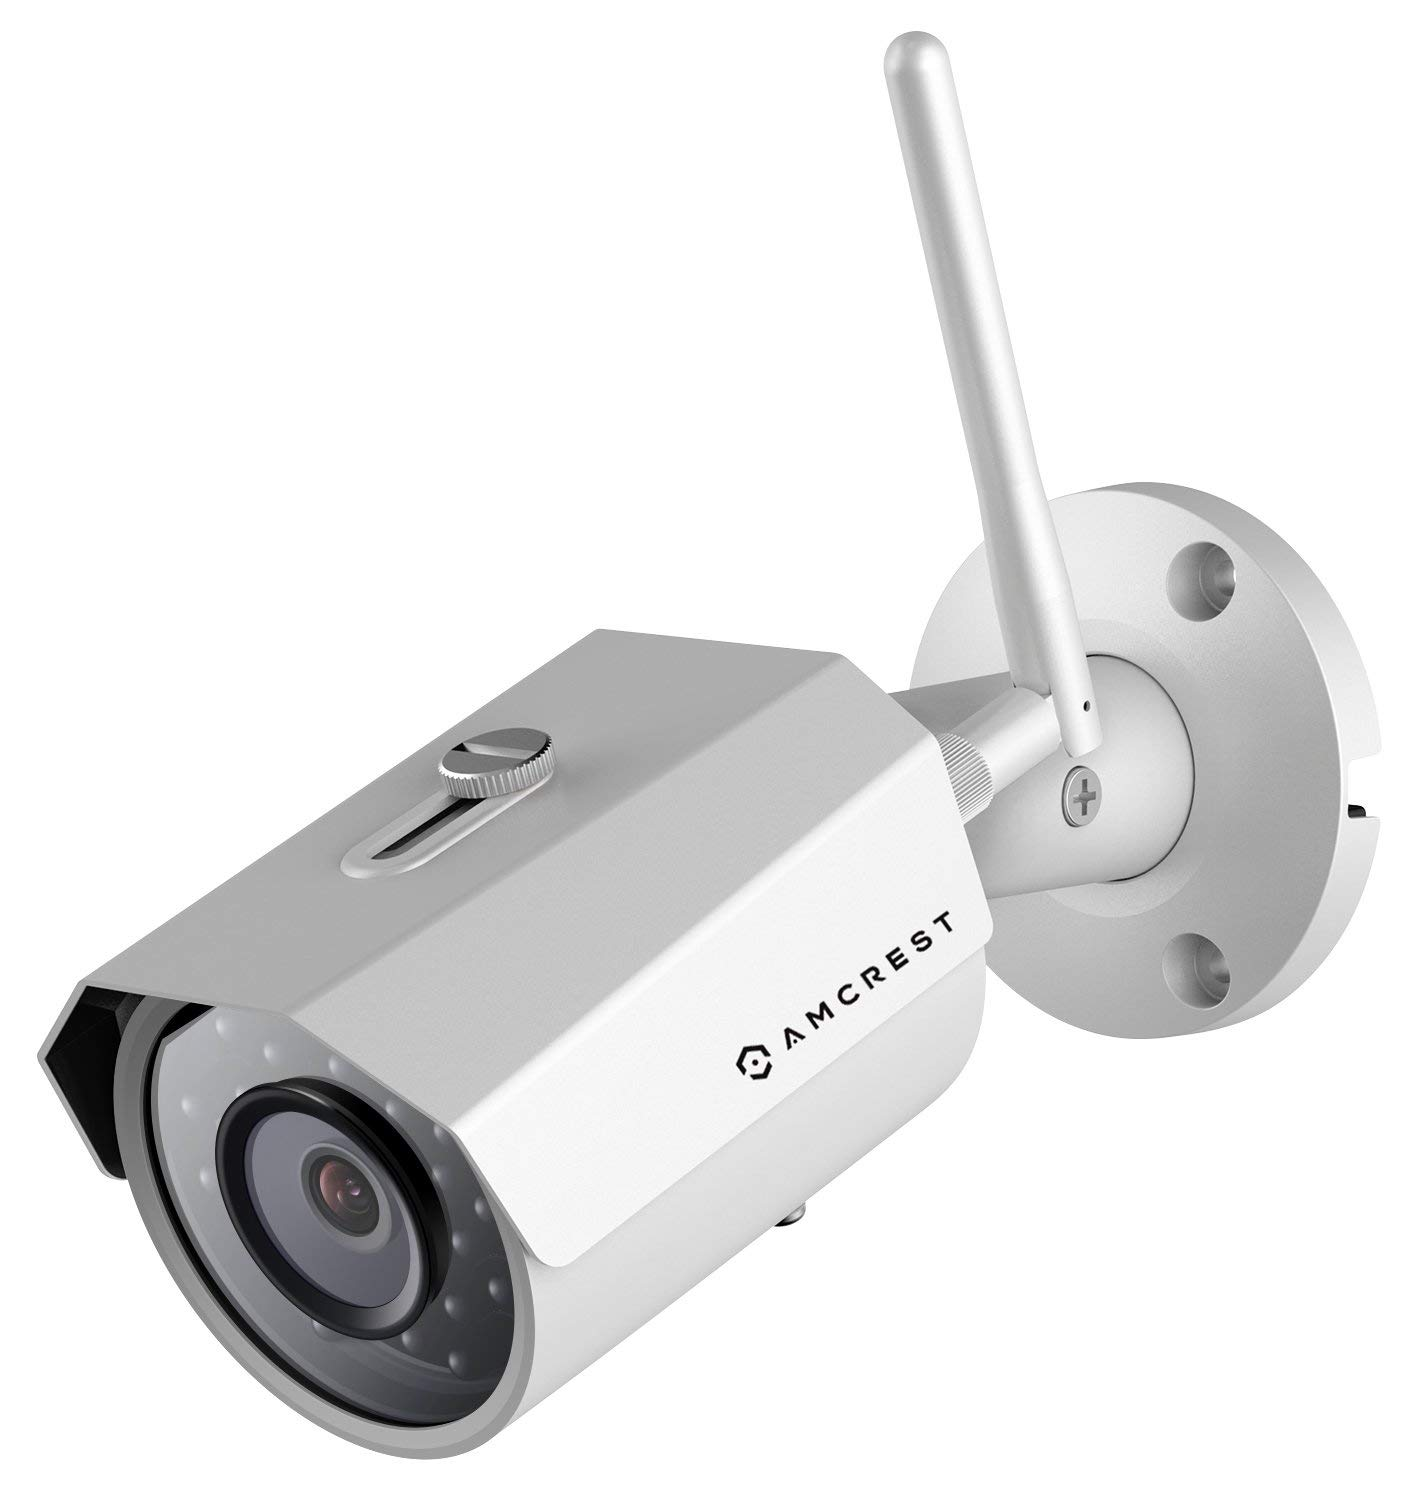 Best bullet security camera system